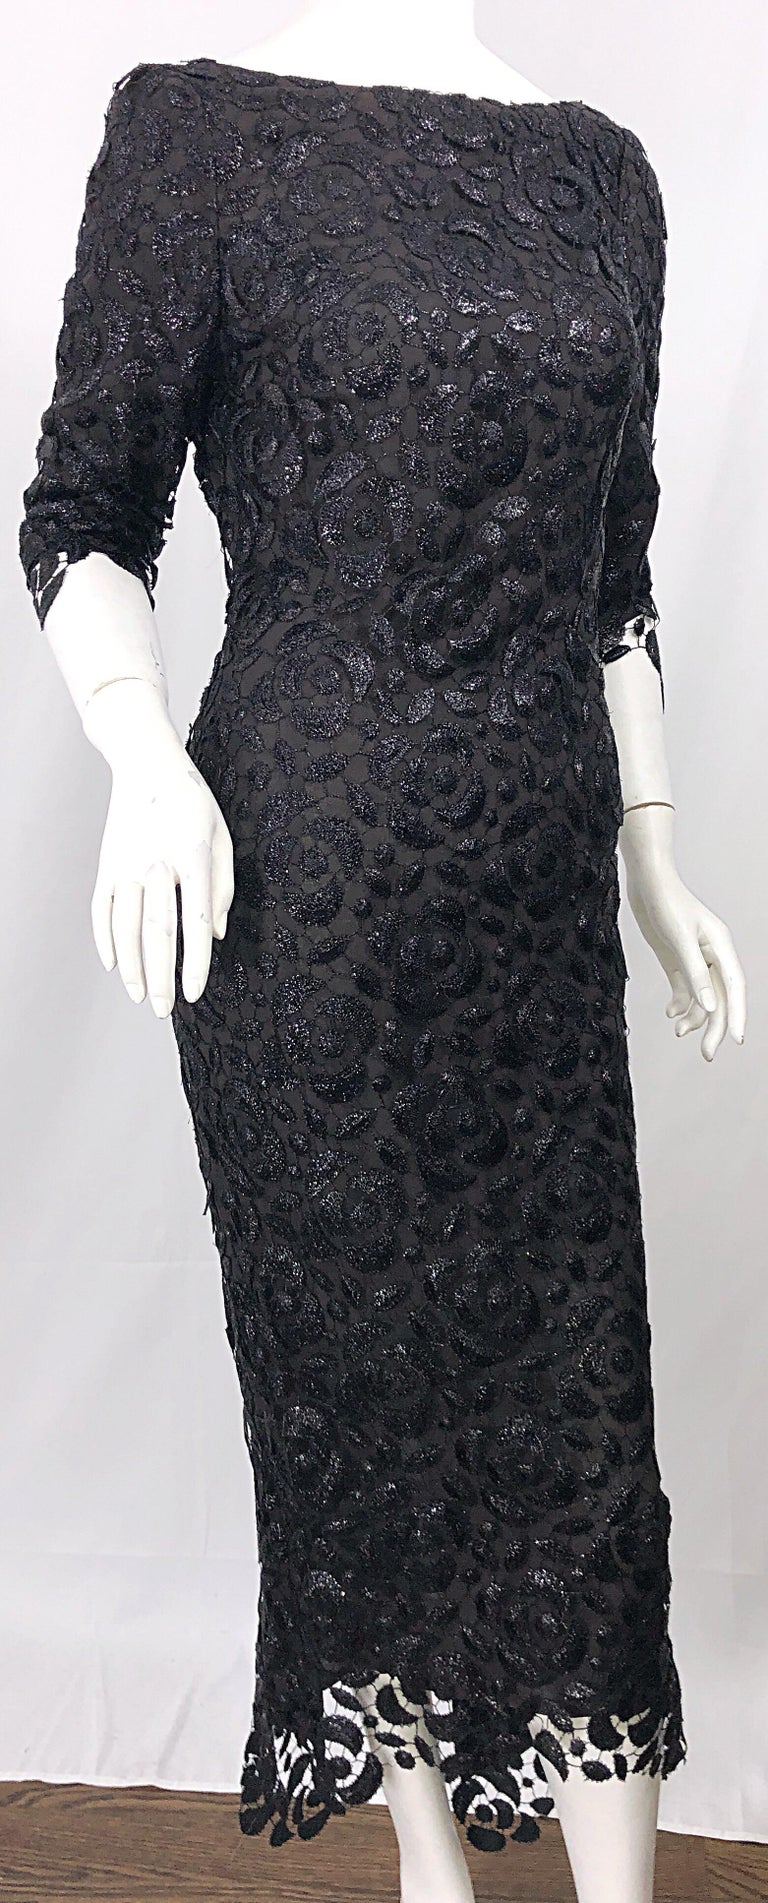 Stunning $10k Vintage Halston Black 3/4 Sleeves Silk Lace Crochet Sz 4 6 Dress For Sale 8